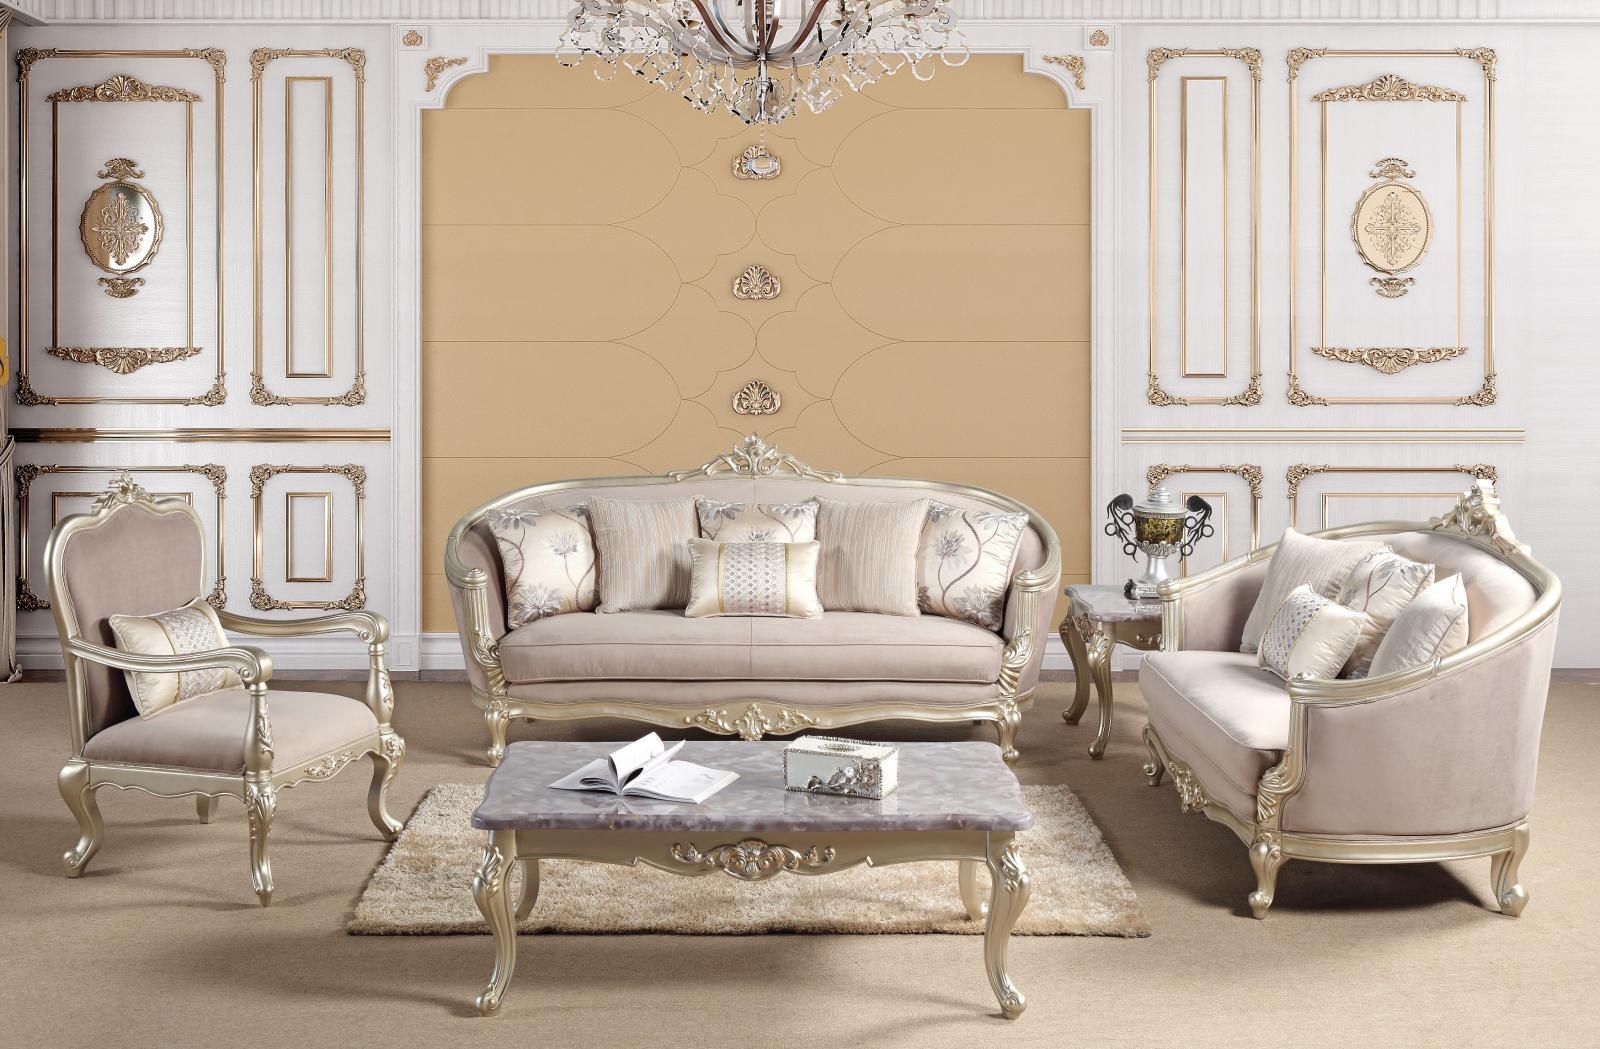 Traditional Champagne Fabric and Fabric, Wood Sofa Loveseat and Chair Set 3 pcs Elanor by Cosmos Furniture